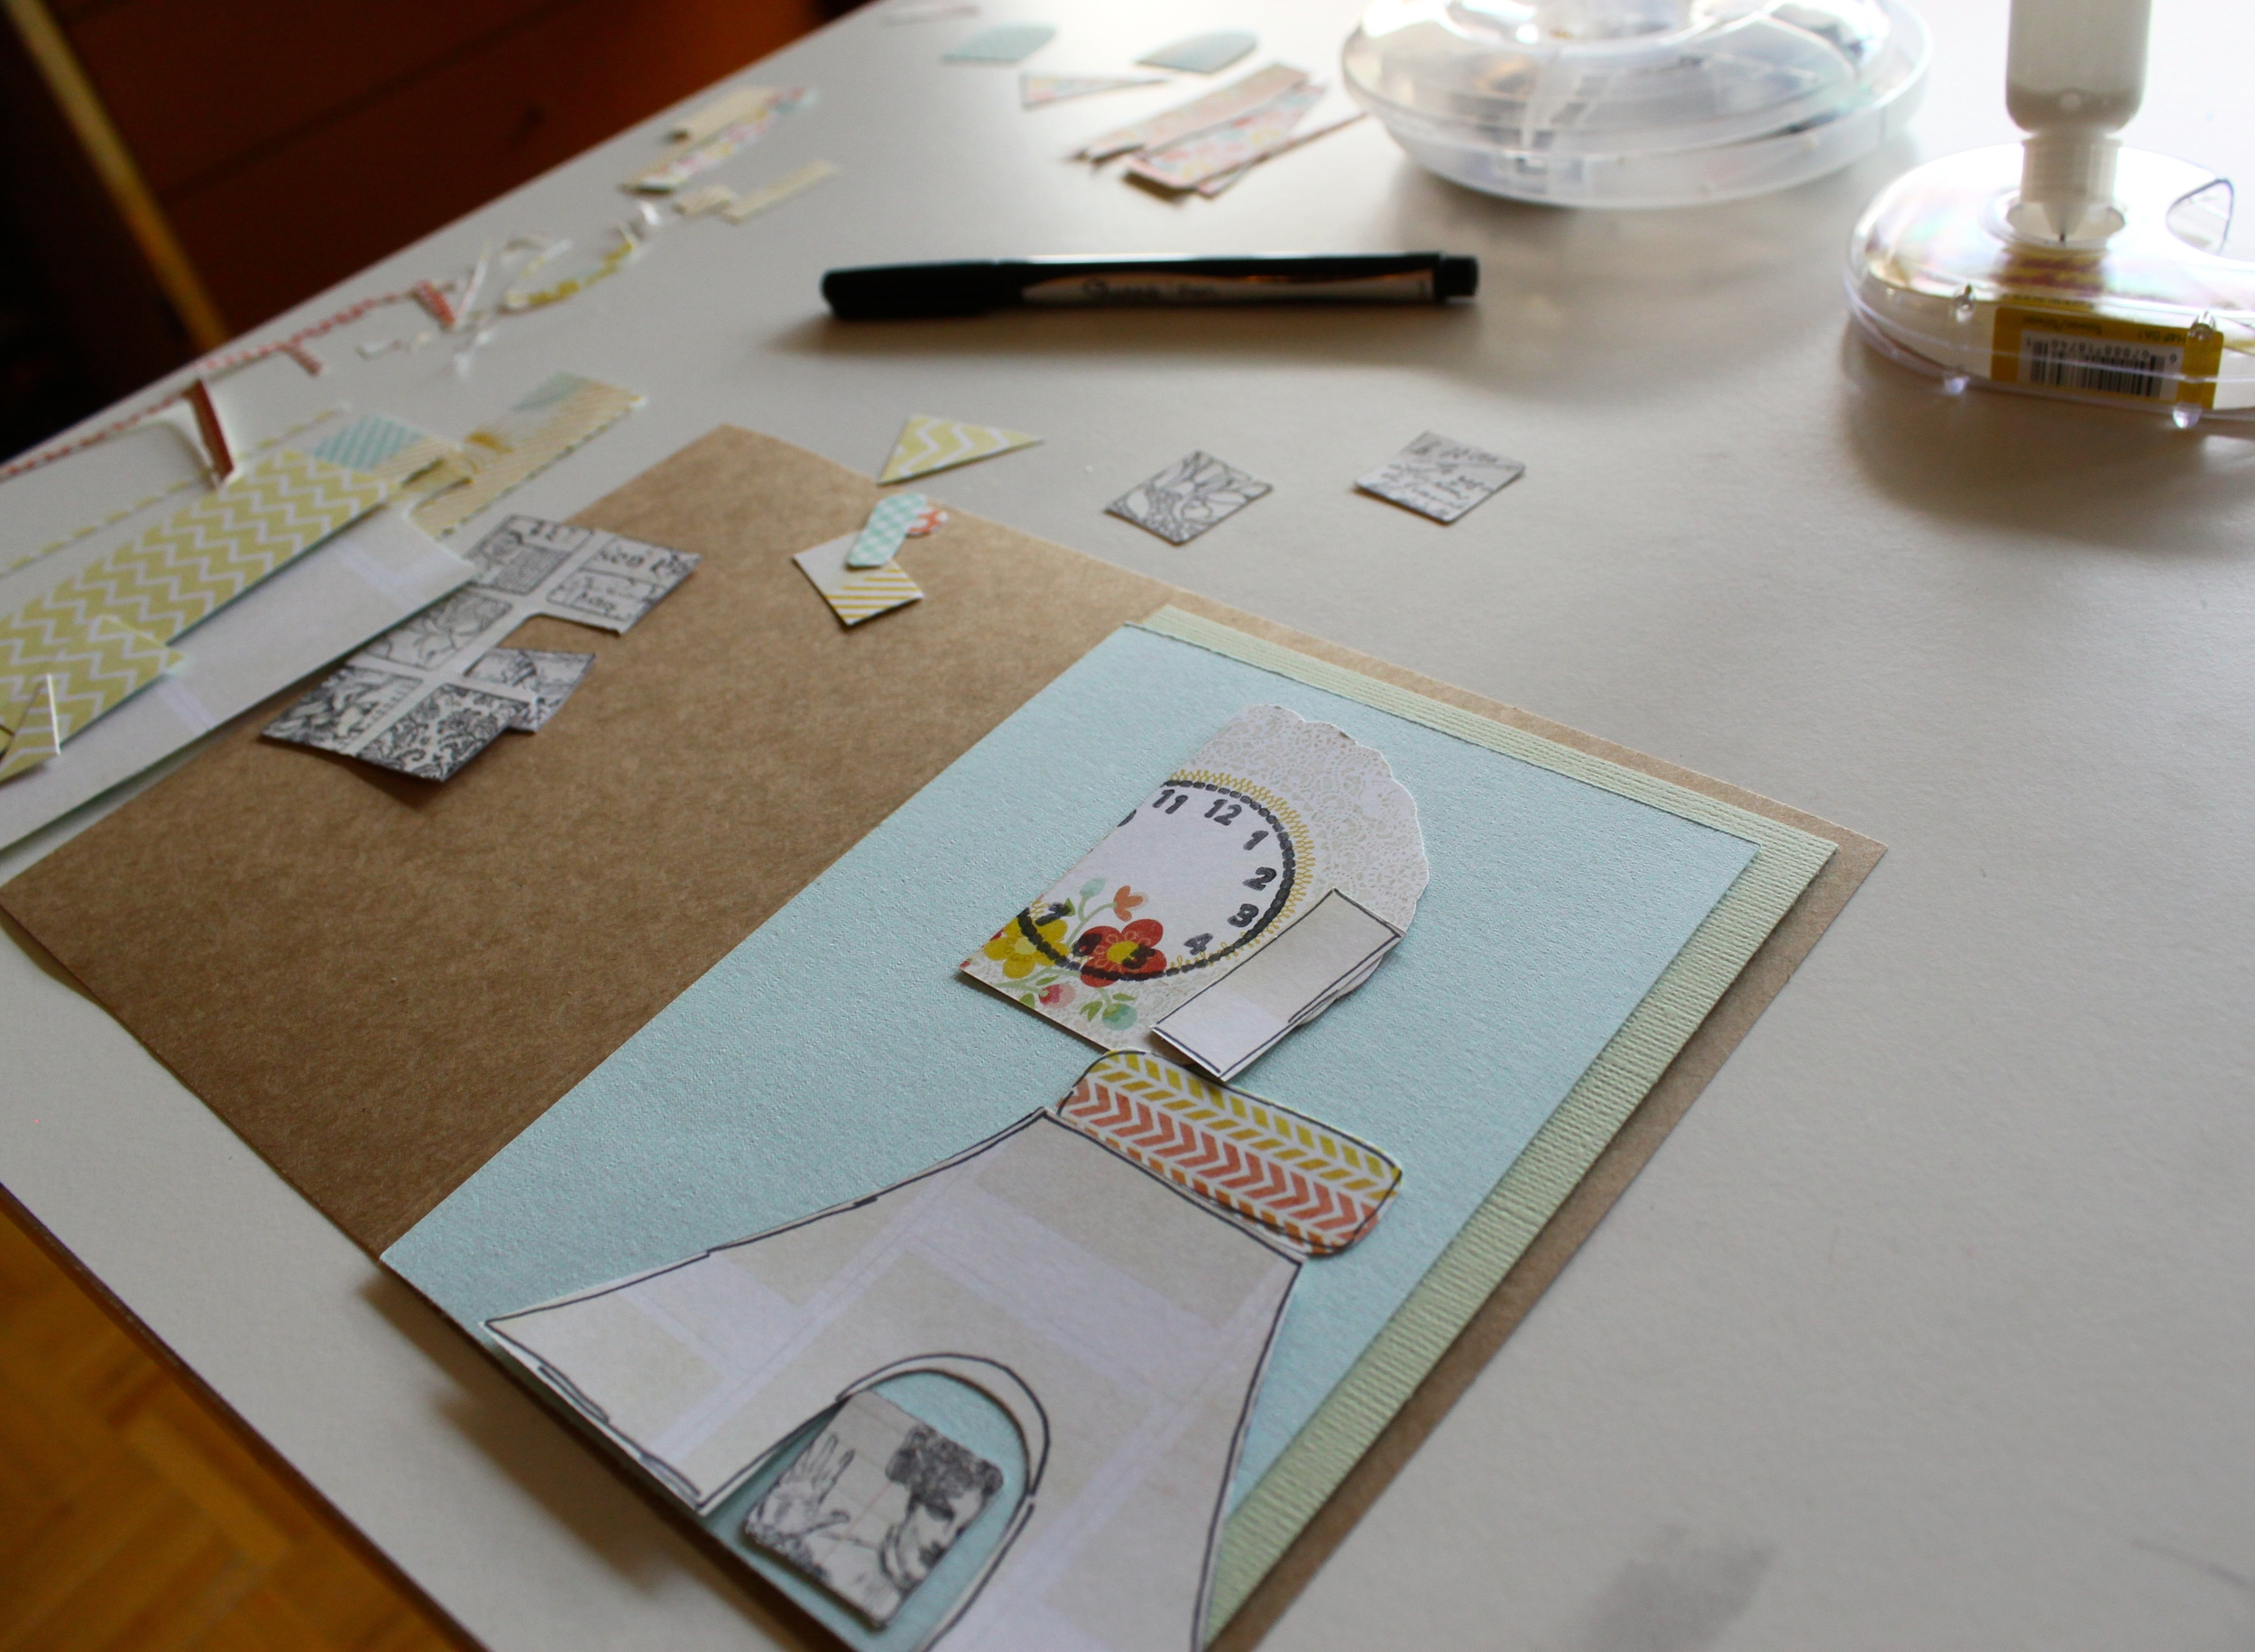 Scraps On My Table Turn Into Feature in The Stampers' Sampler